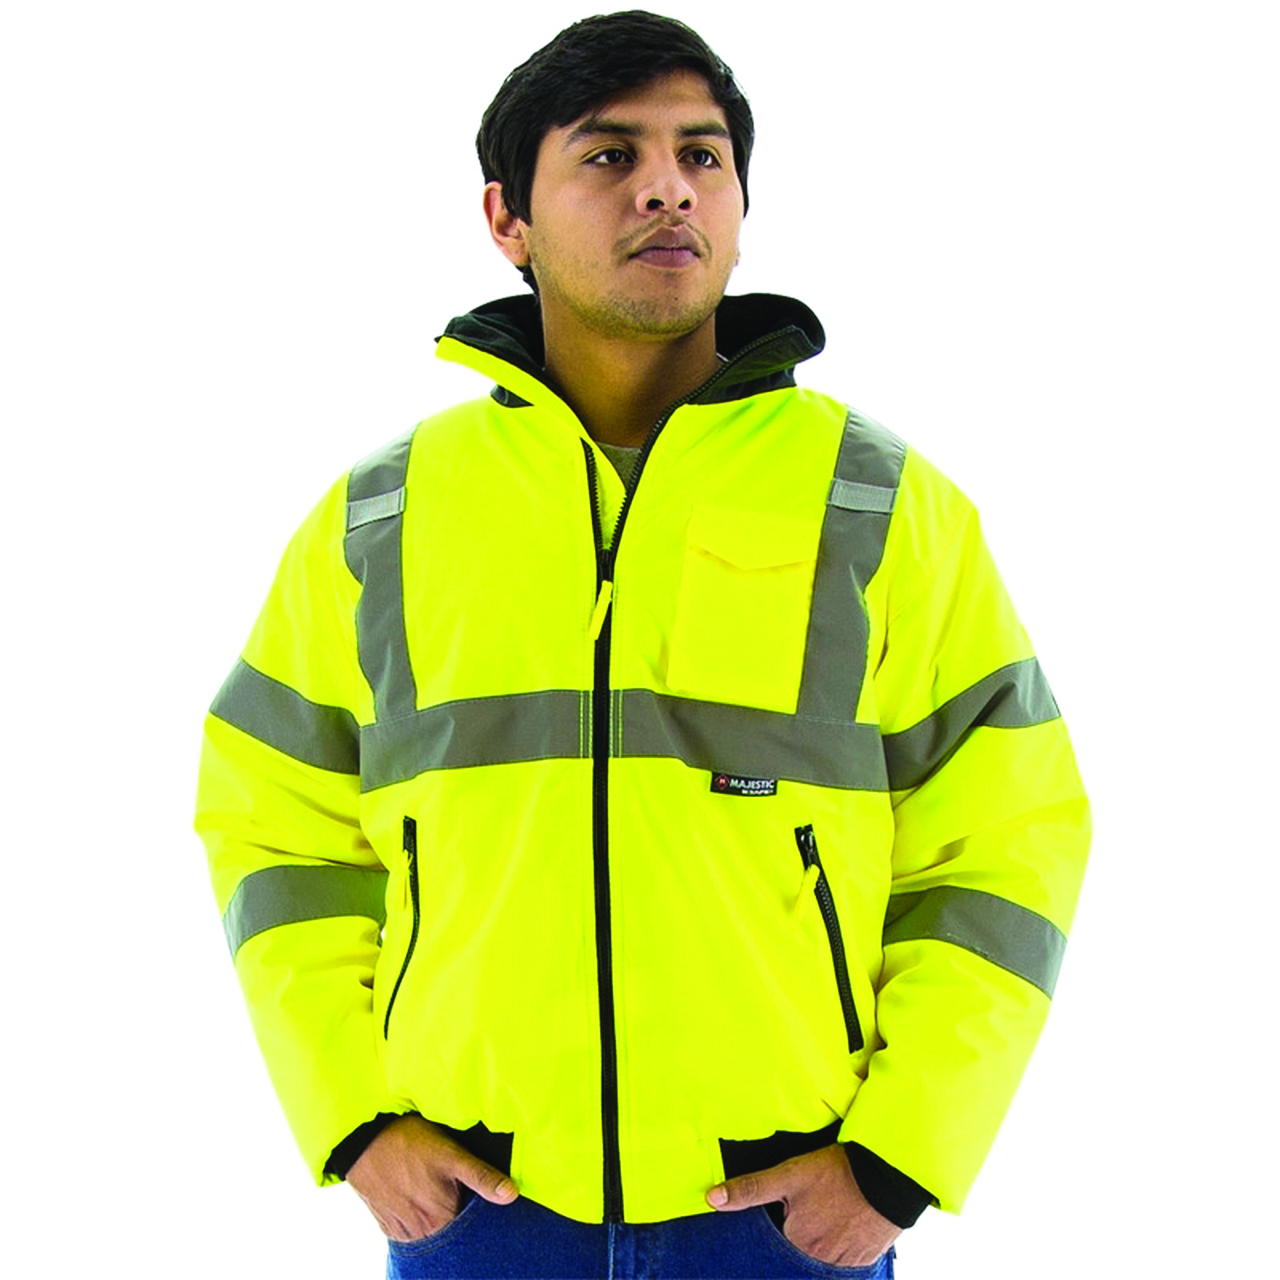 75-1300/M - High Vis Waterproof Jacket w/ quilted liner -High Visibility Waterproof Jacket with Quilted Liner-Yellow, Medium----UOM: 1/EA